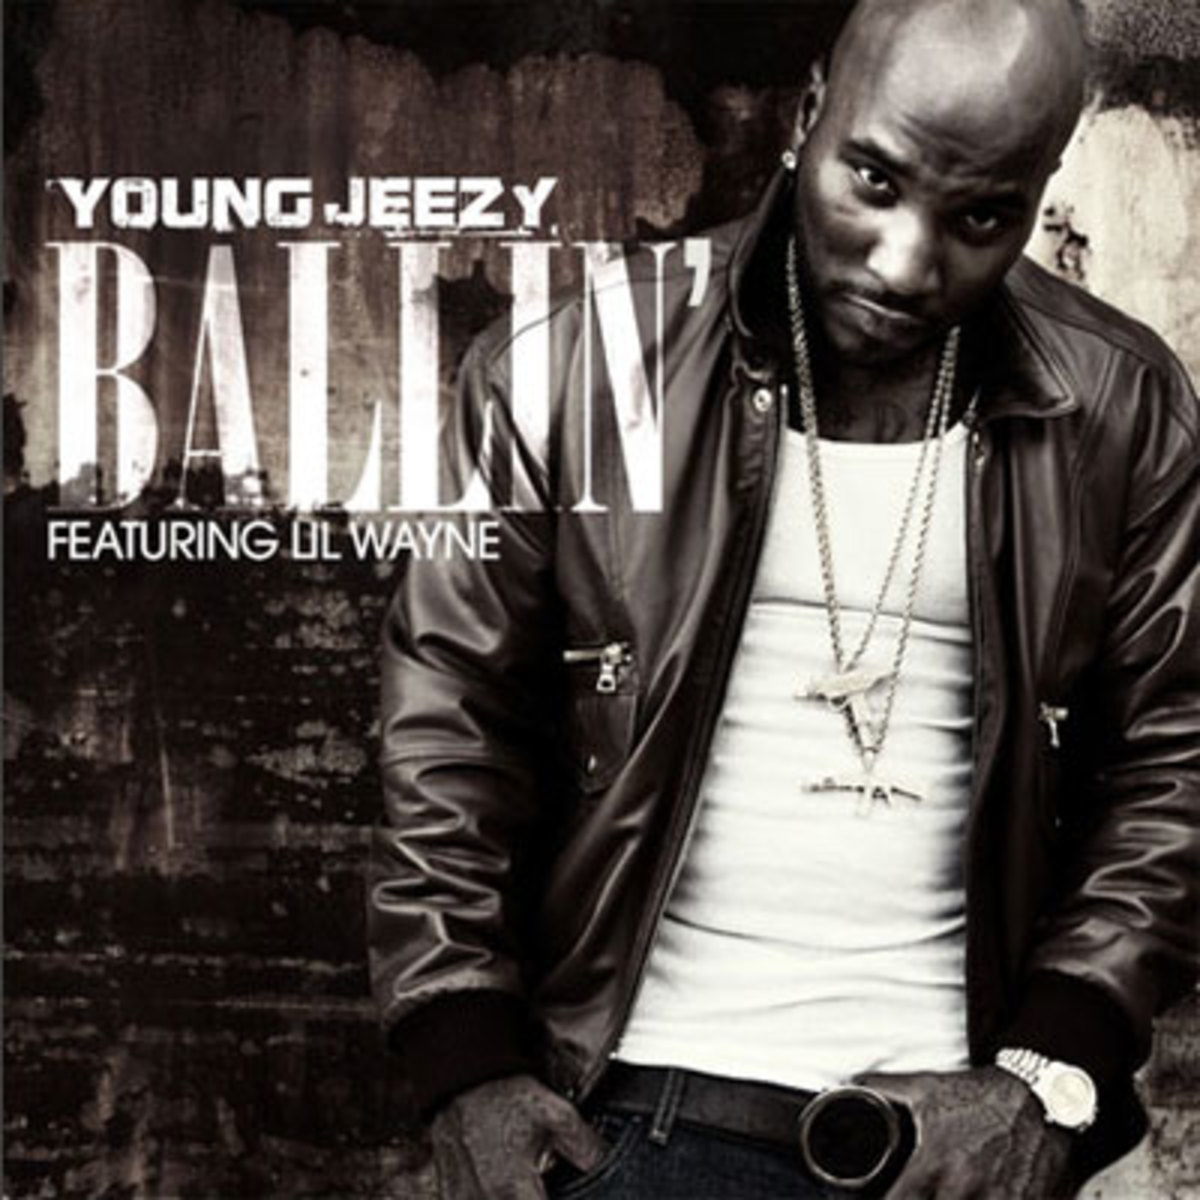 Young Jeezy ft. Lil Wayne - Ballin' - DJBooth